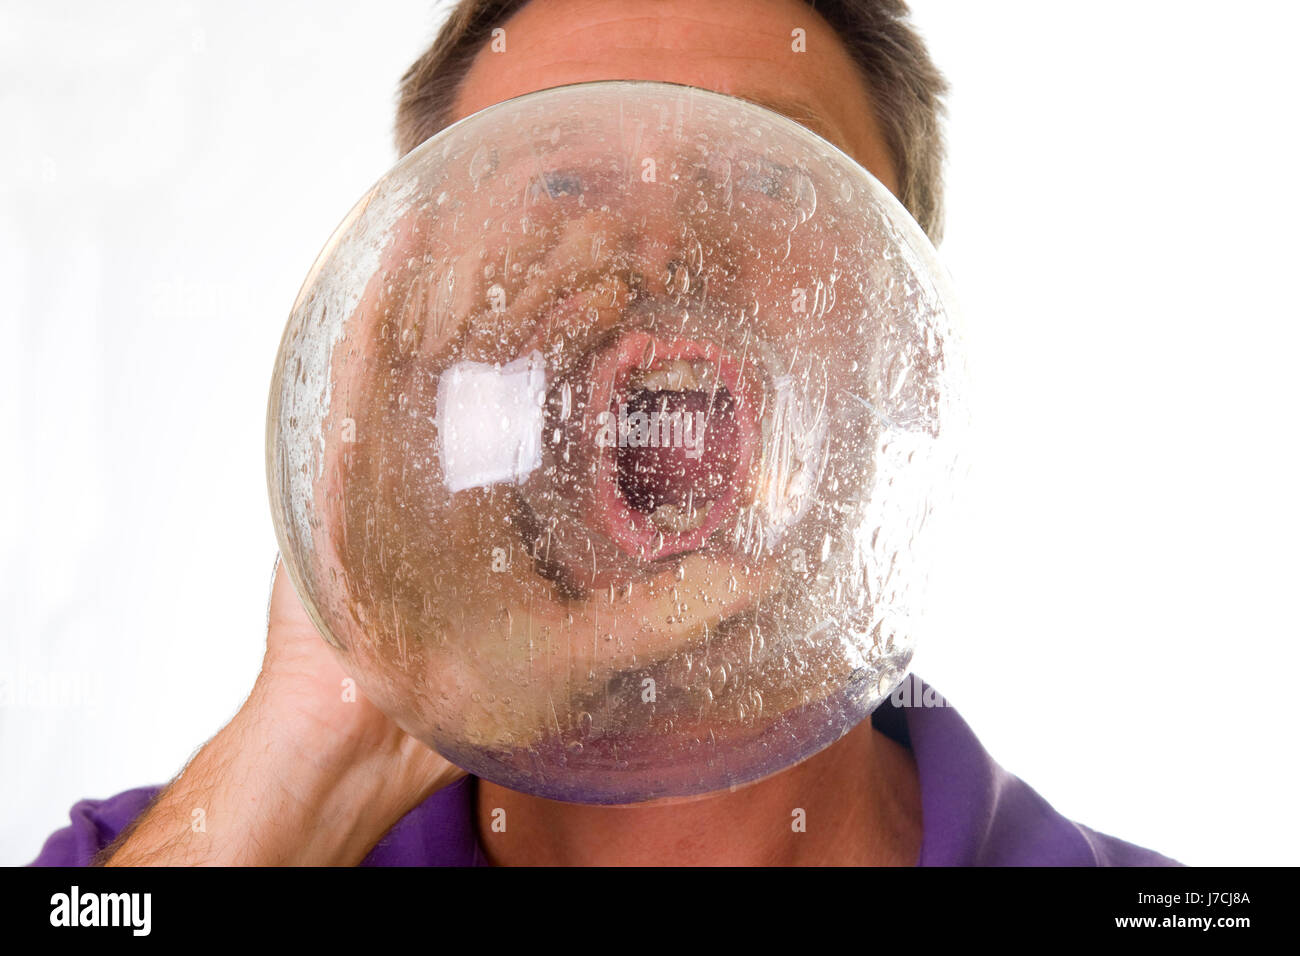 Man shouting through crystal ball with magnified mouth - Stock Image